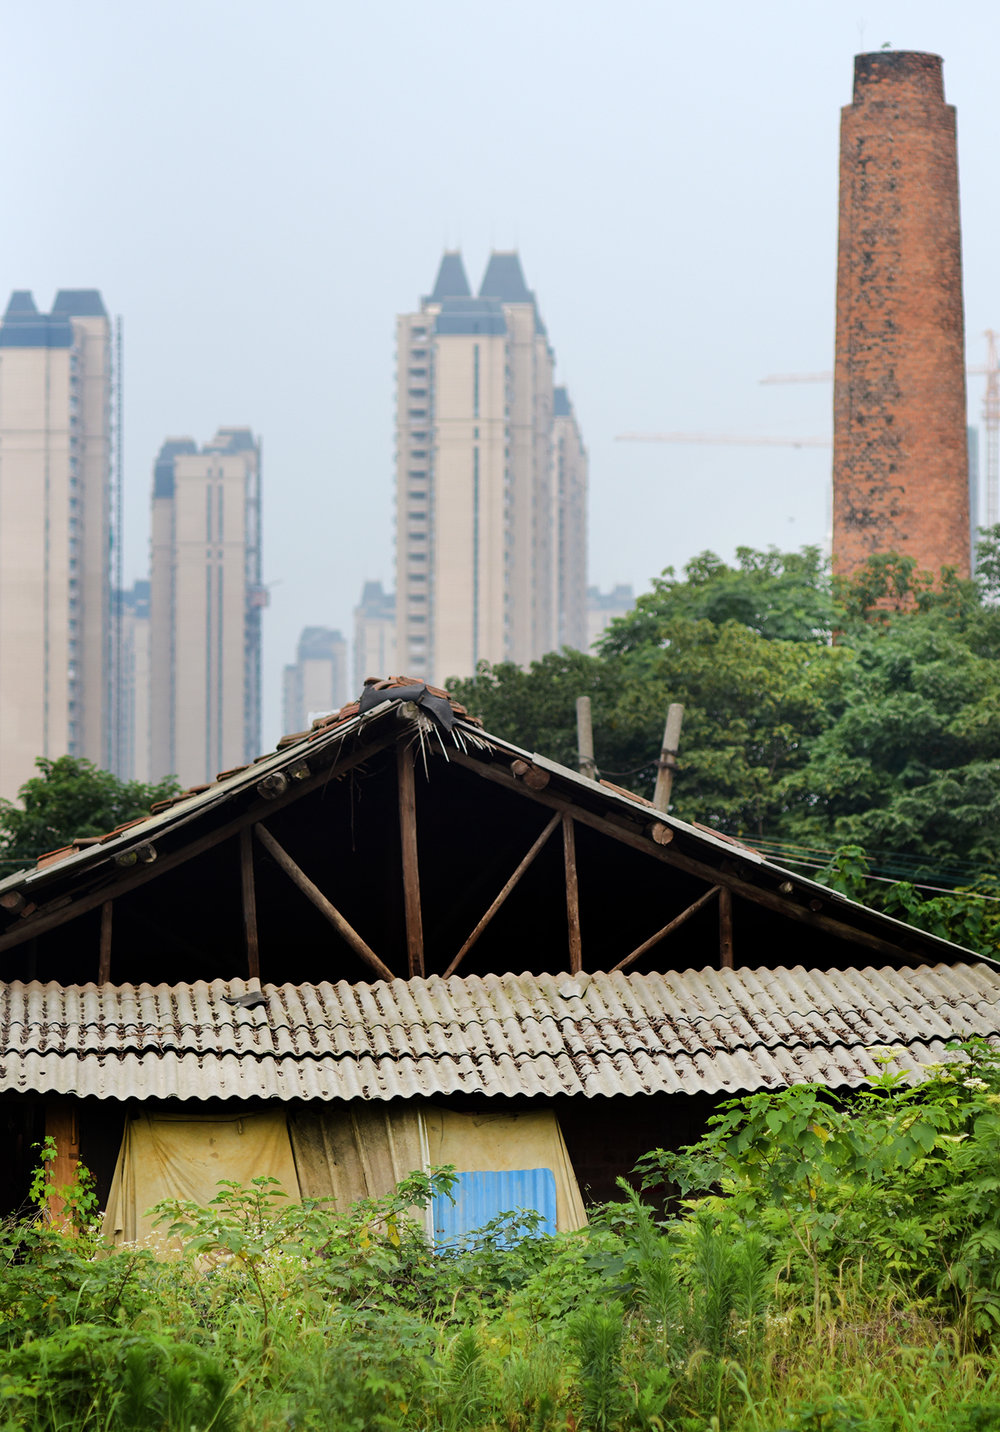 Against the backdrop of JIngzhou city, the workshop and kiln of Xia Yugu, Inheritor of ICH pottery.